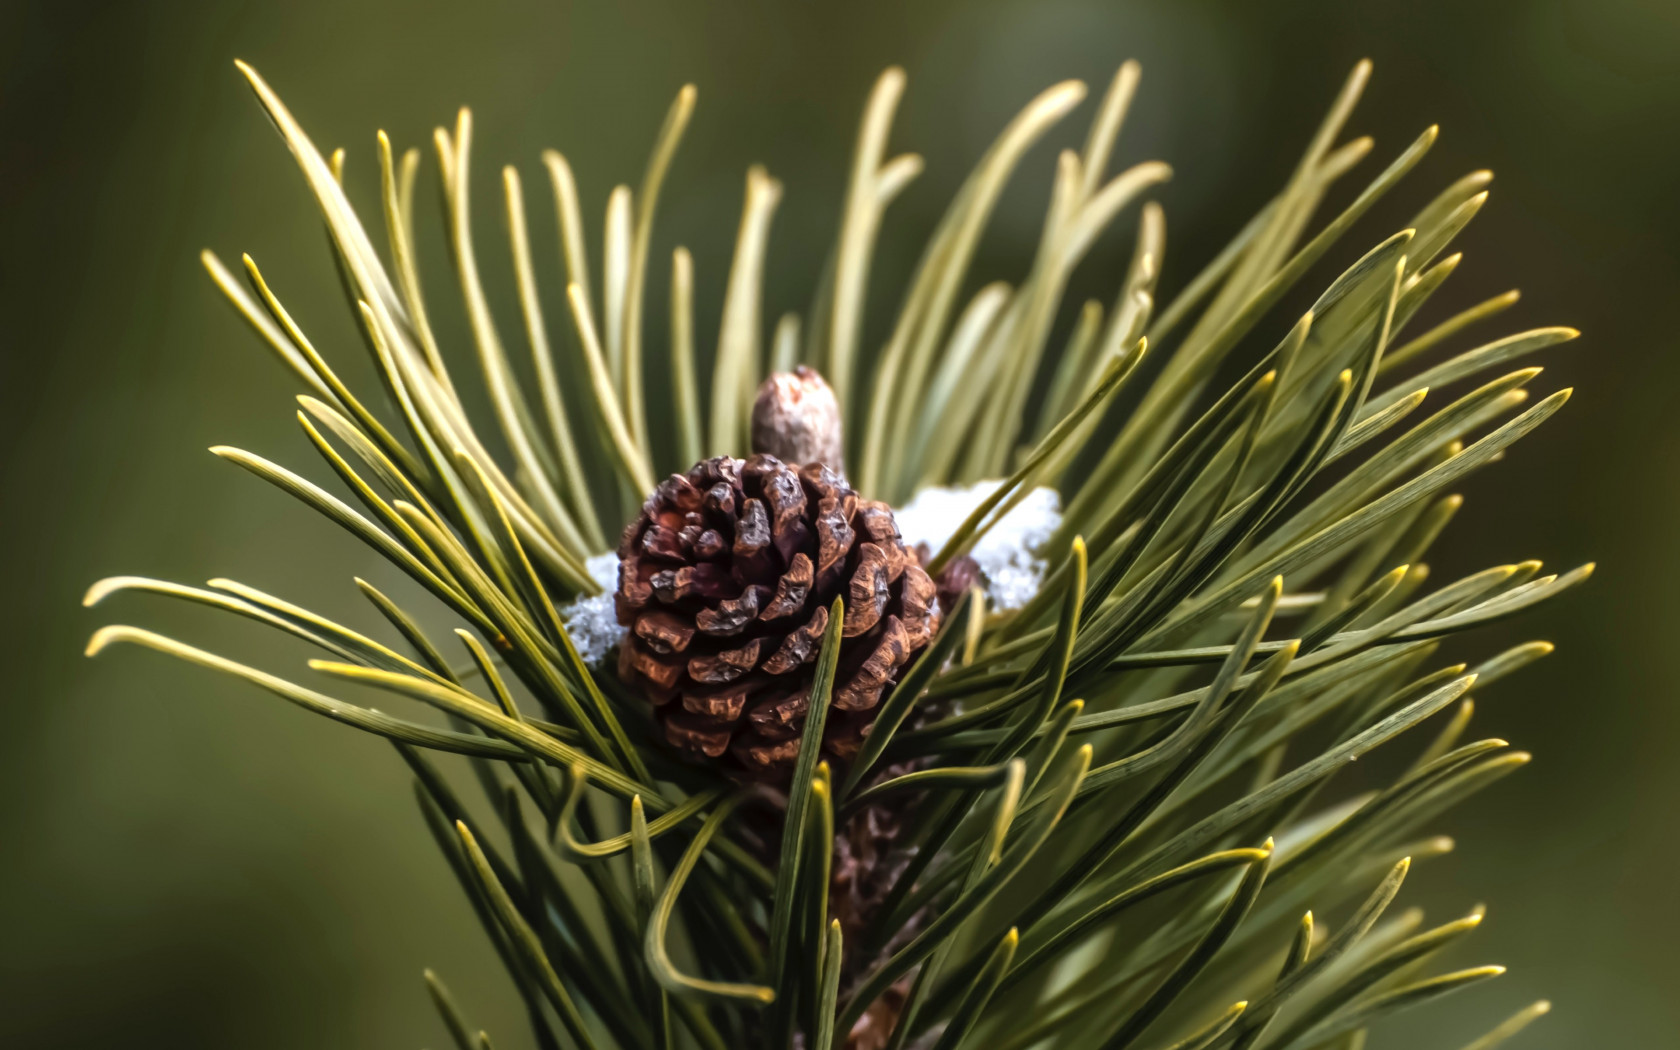 Cone and pine needles | 1680x1050 wallpaper